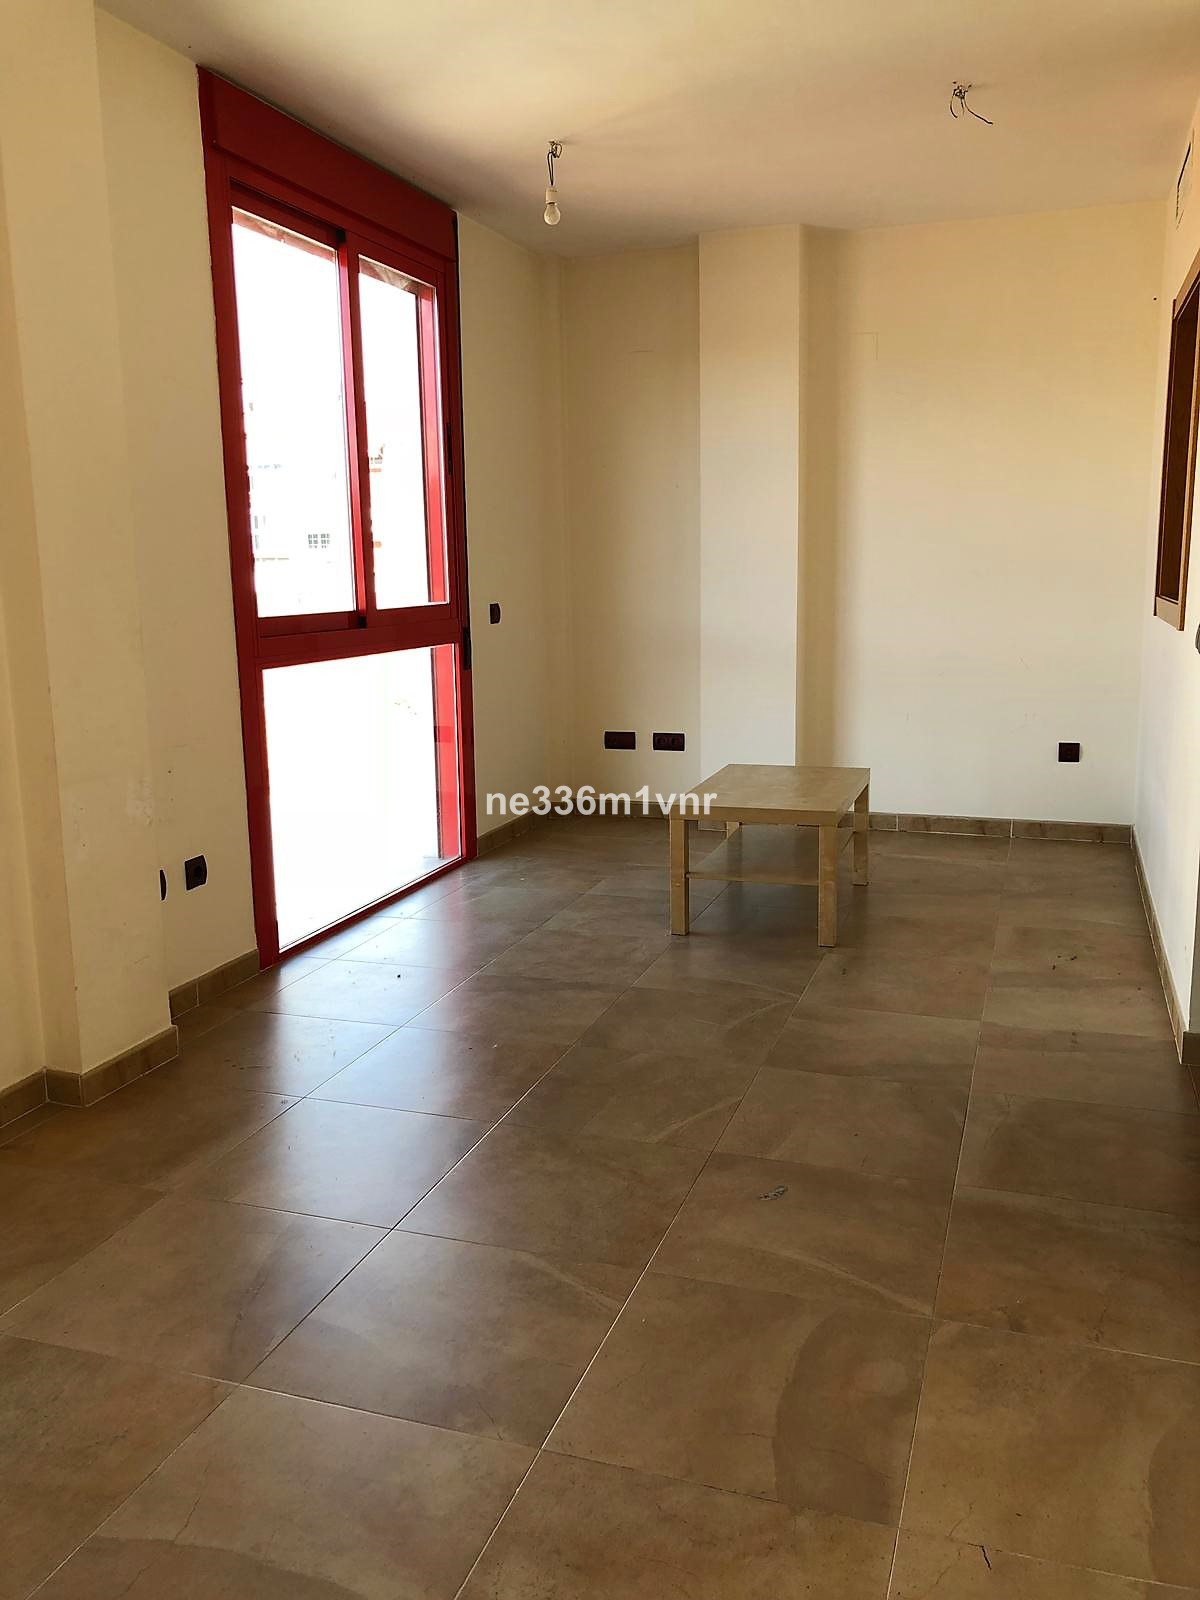 R3298228: Studio for sale in Málaga